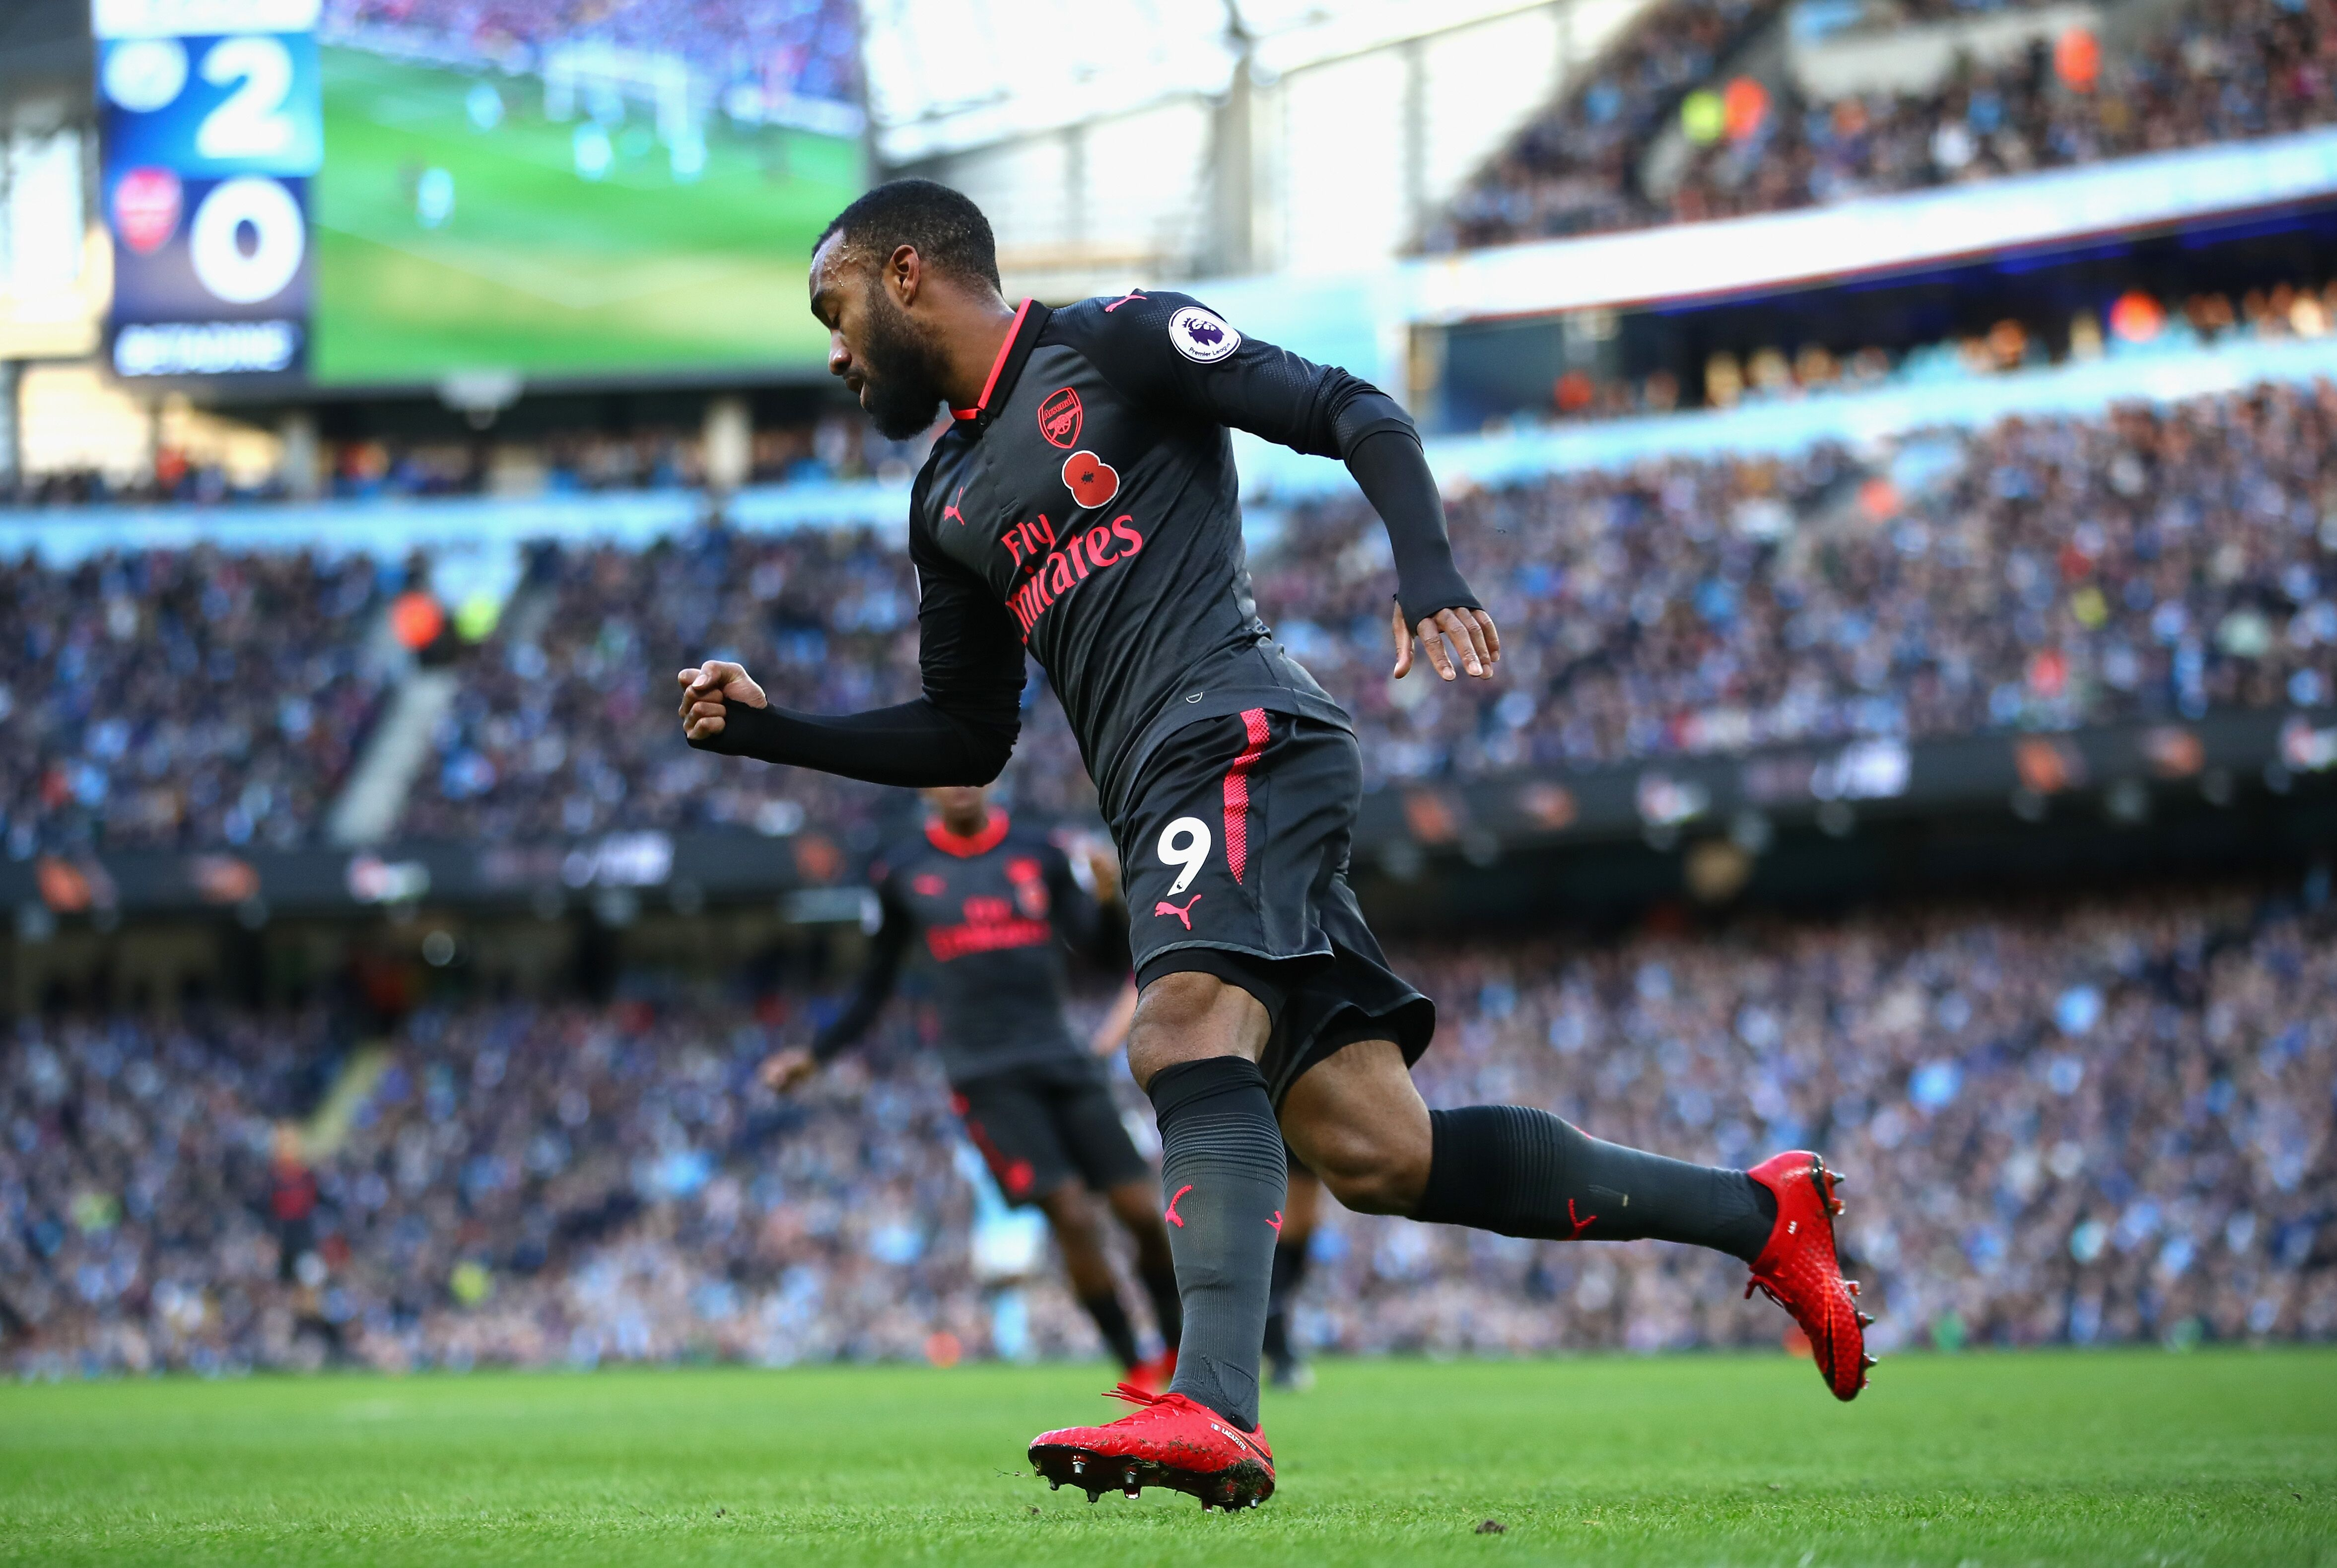 Arsenal Alexandre Lacazette Will Come Alive With Nabil Fekir Revolution